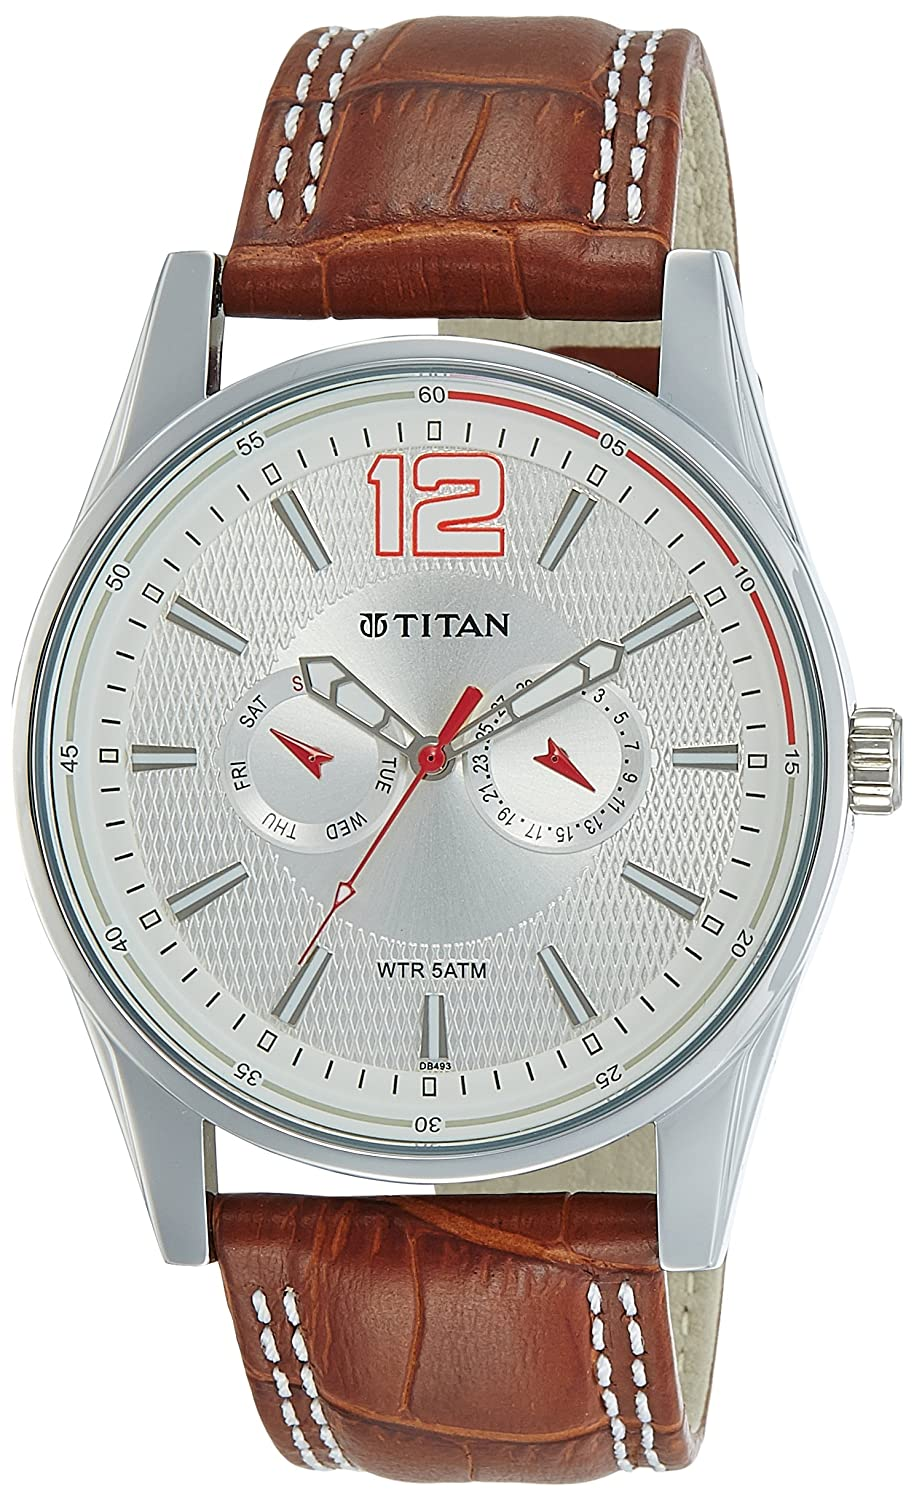 Titan Octane Chronograph Multi-Color Dial Best Mens Watches Under 5000 in India to buy in 2019 - Reviews & Buyers Guide